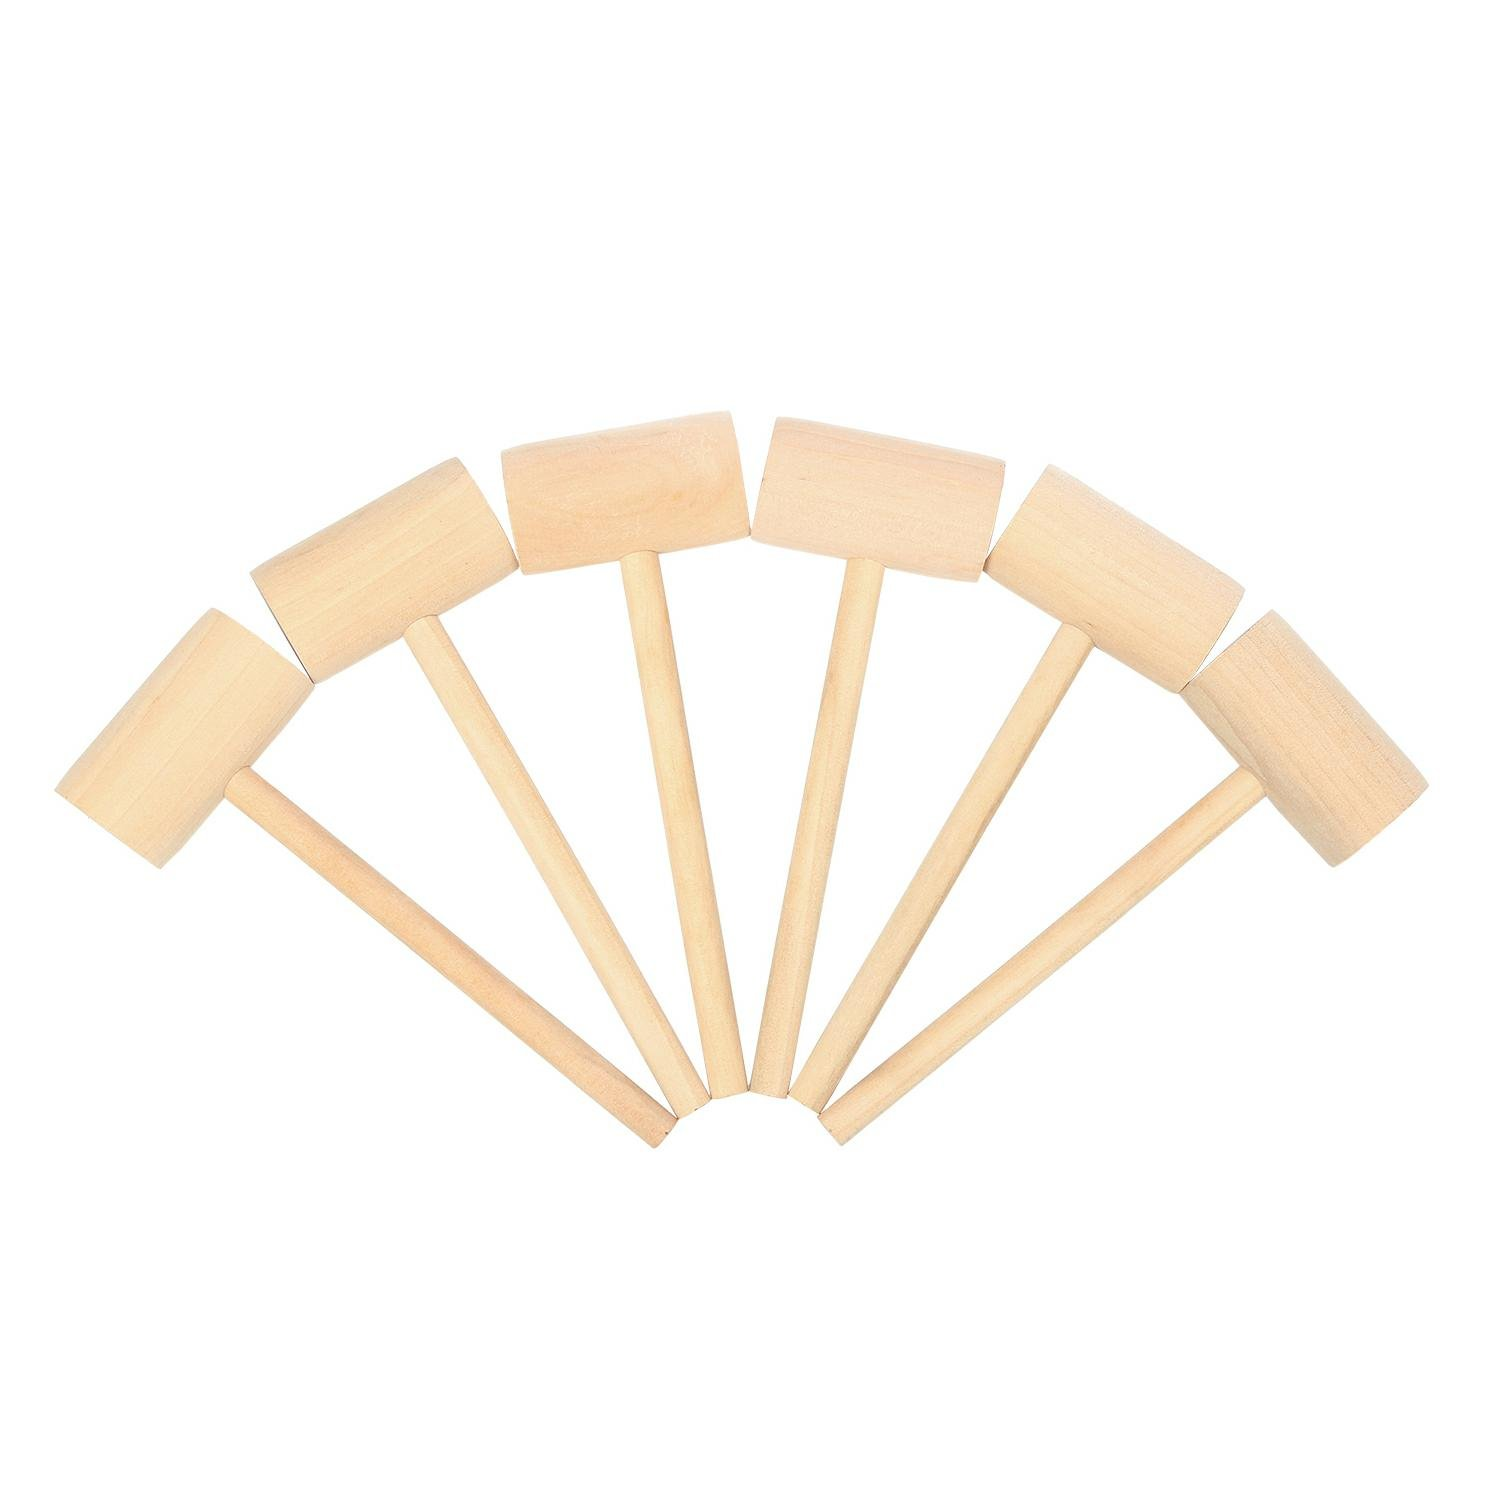 ASIBT 6 Crab or Lobster Mallets SYNCHKG098286